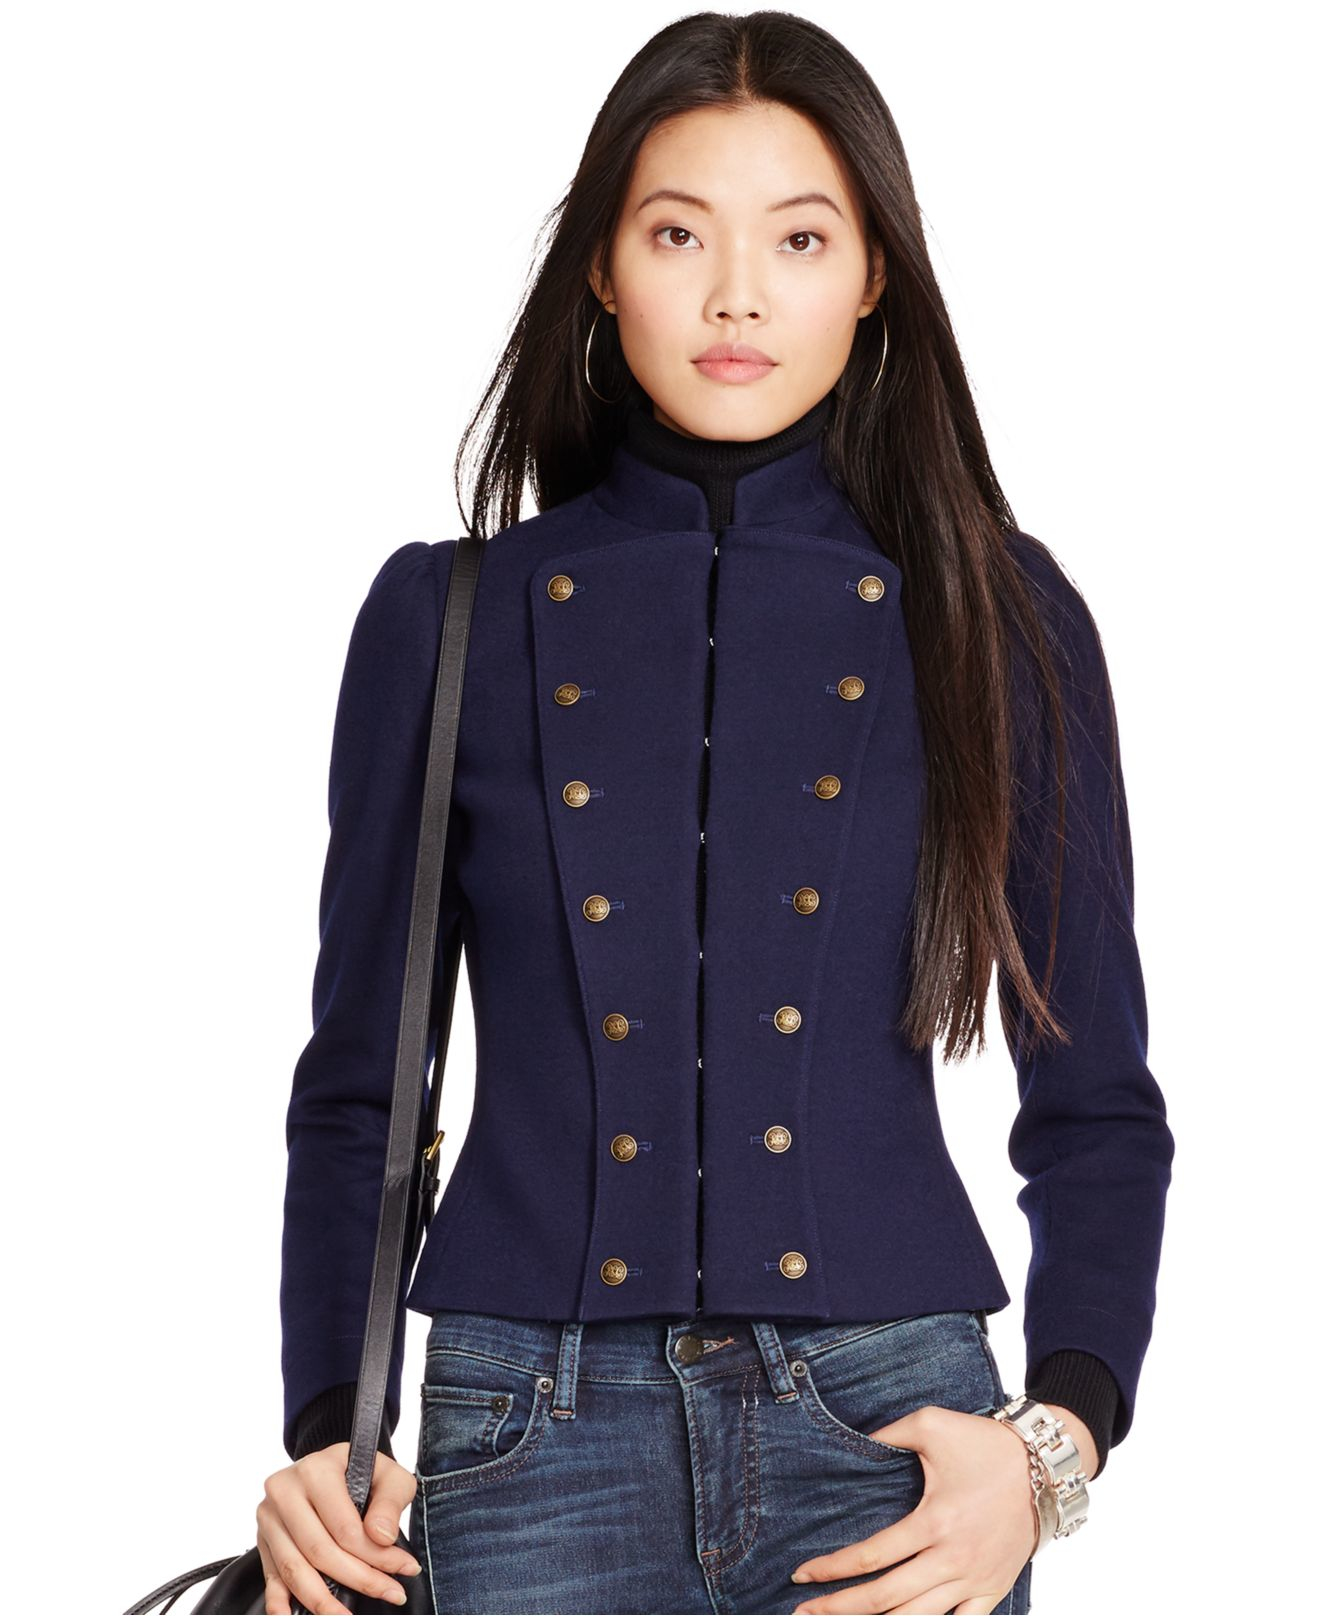 Shop for blue ladies jackets at truexfilepv.cf Next day delivery and free returns available. s of products online. Buy blue coats for women online now!